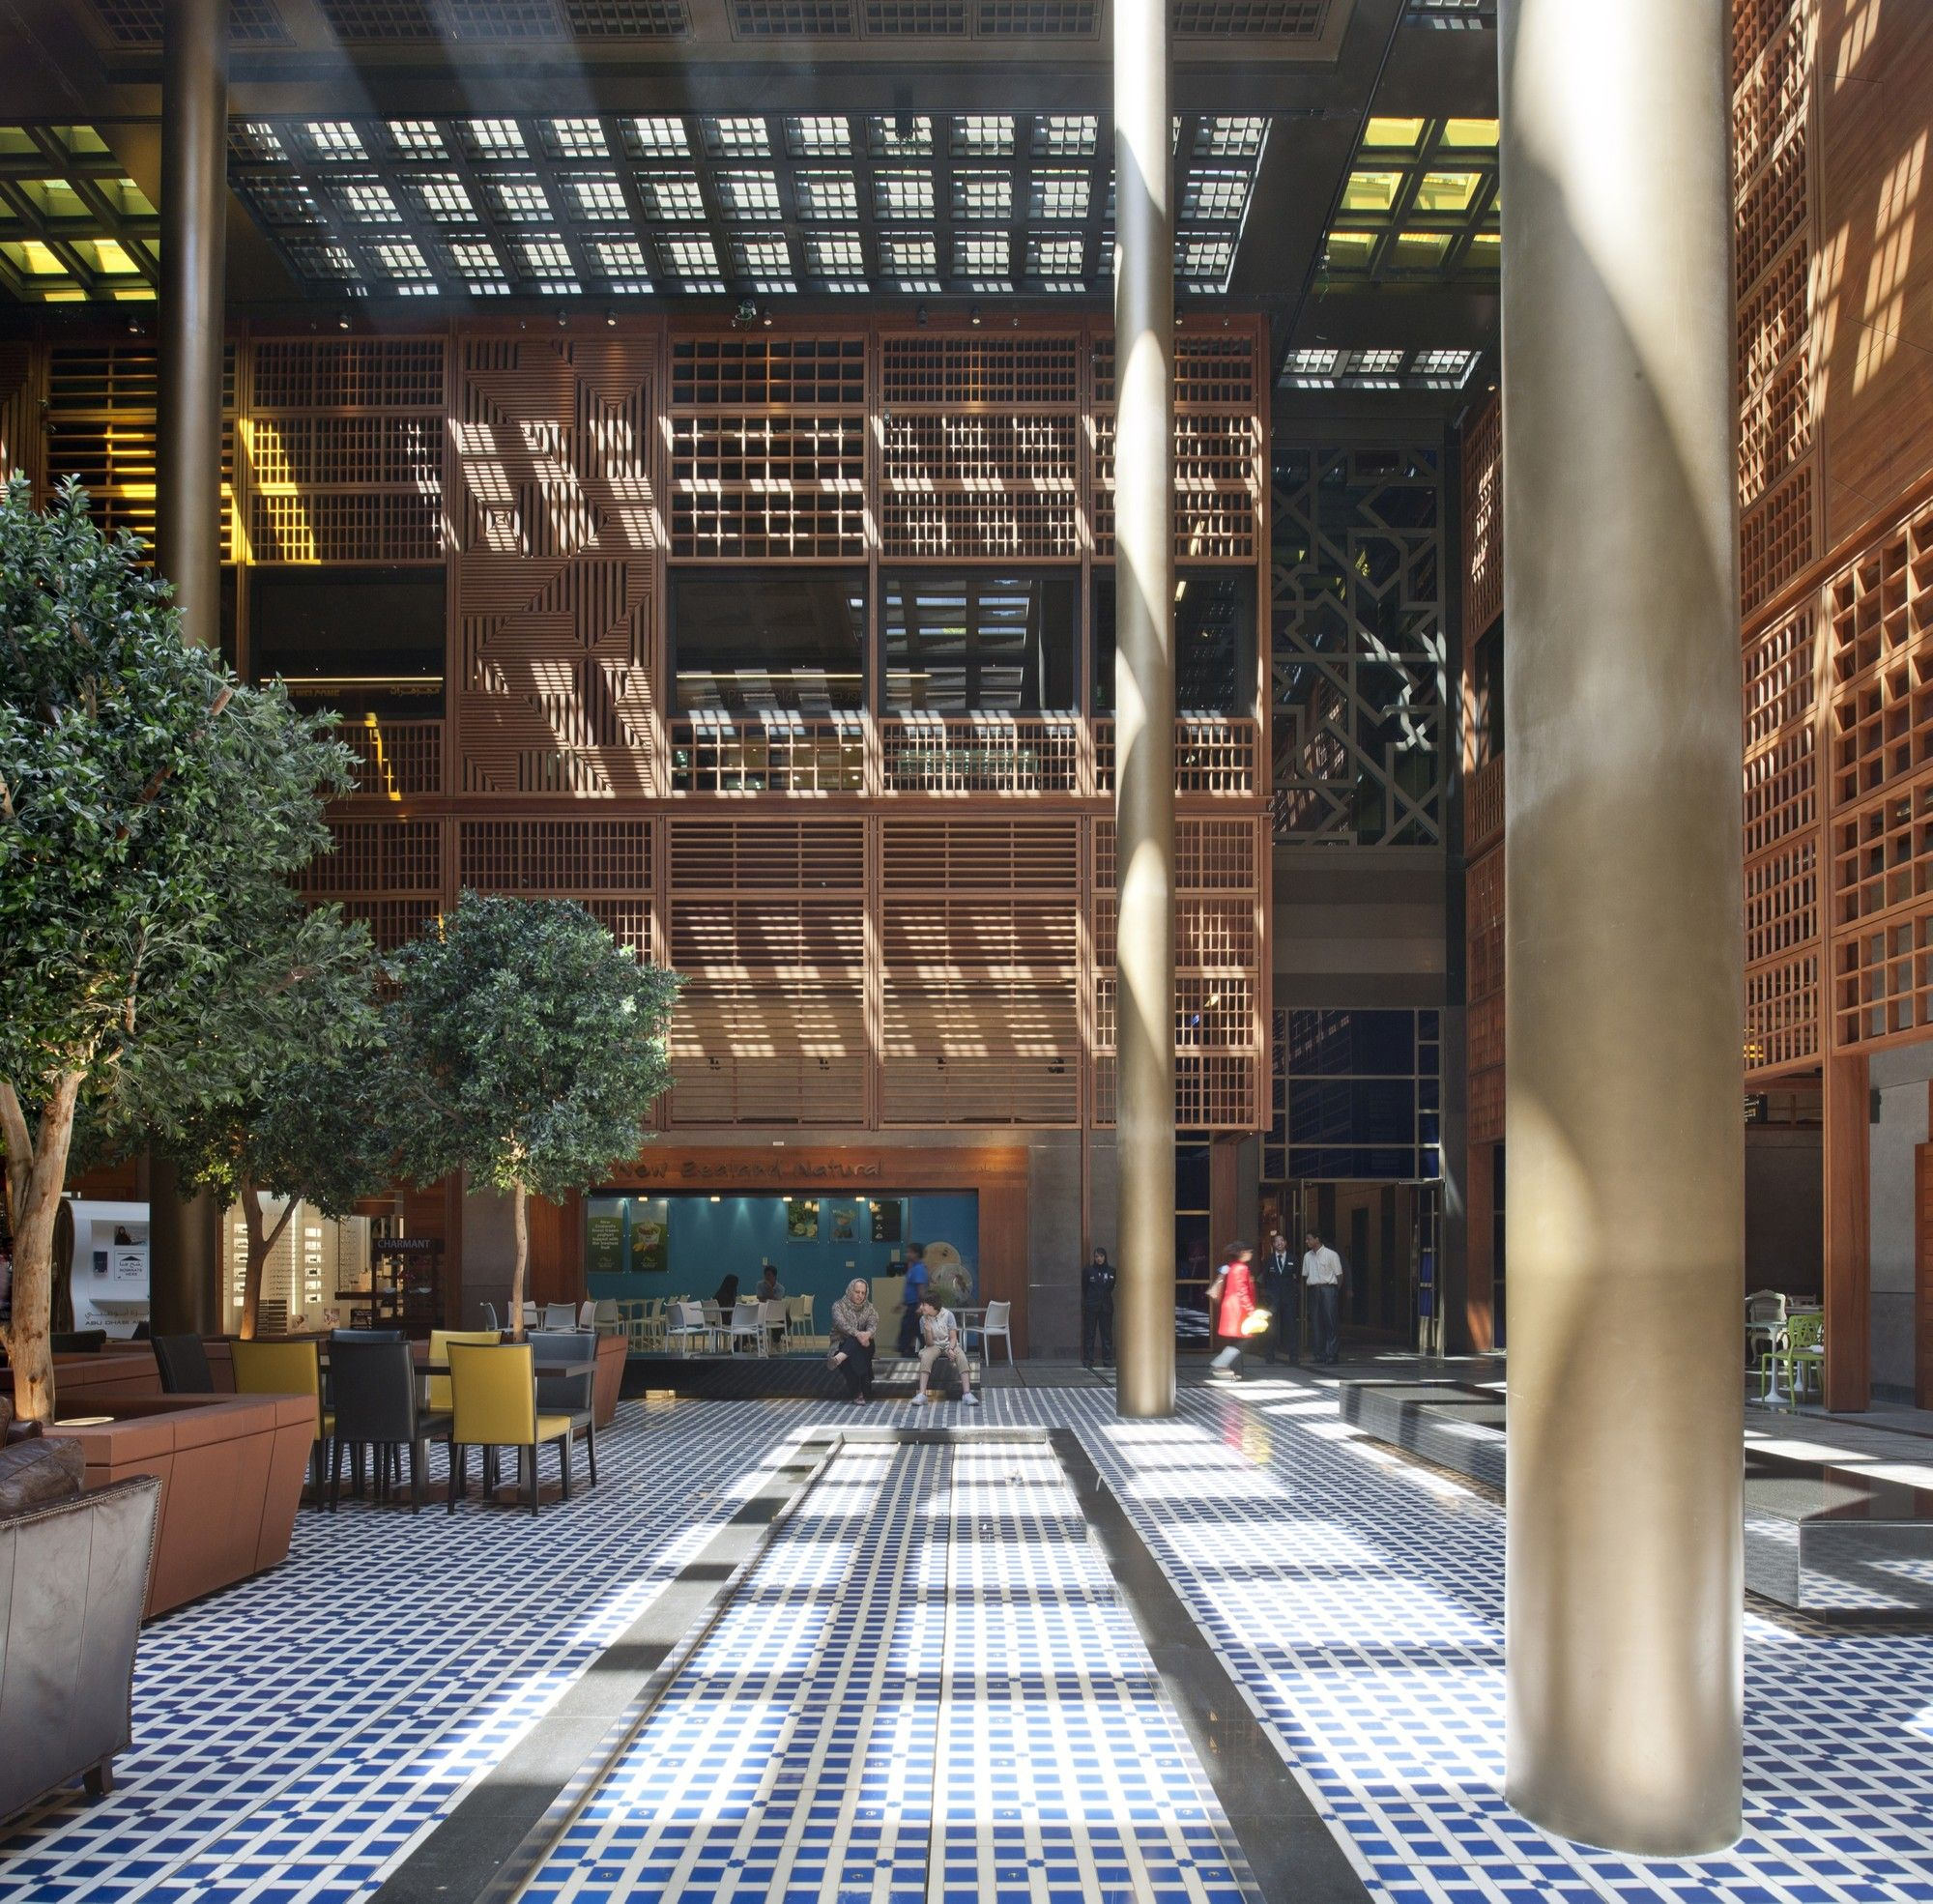 Gallery Of Abu Dhabi Central Market Foster Partners 15 Abu Dhabi The Fosters Foster Partners